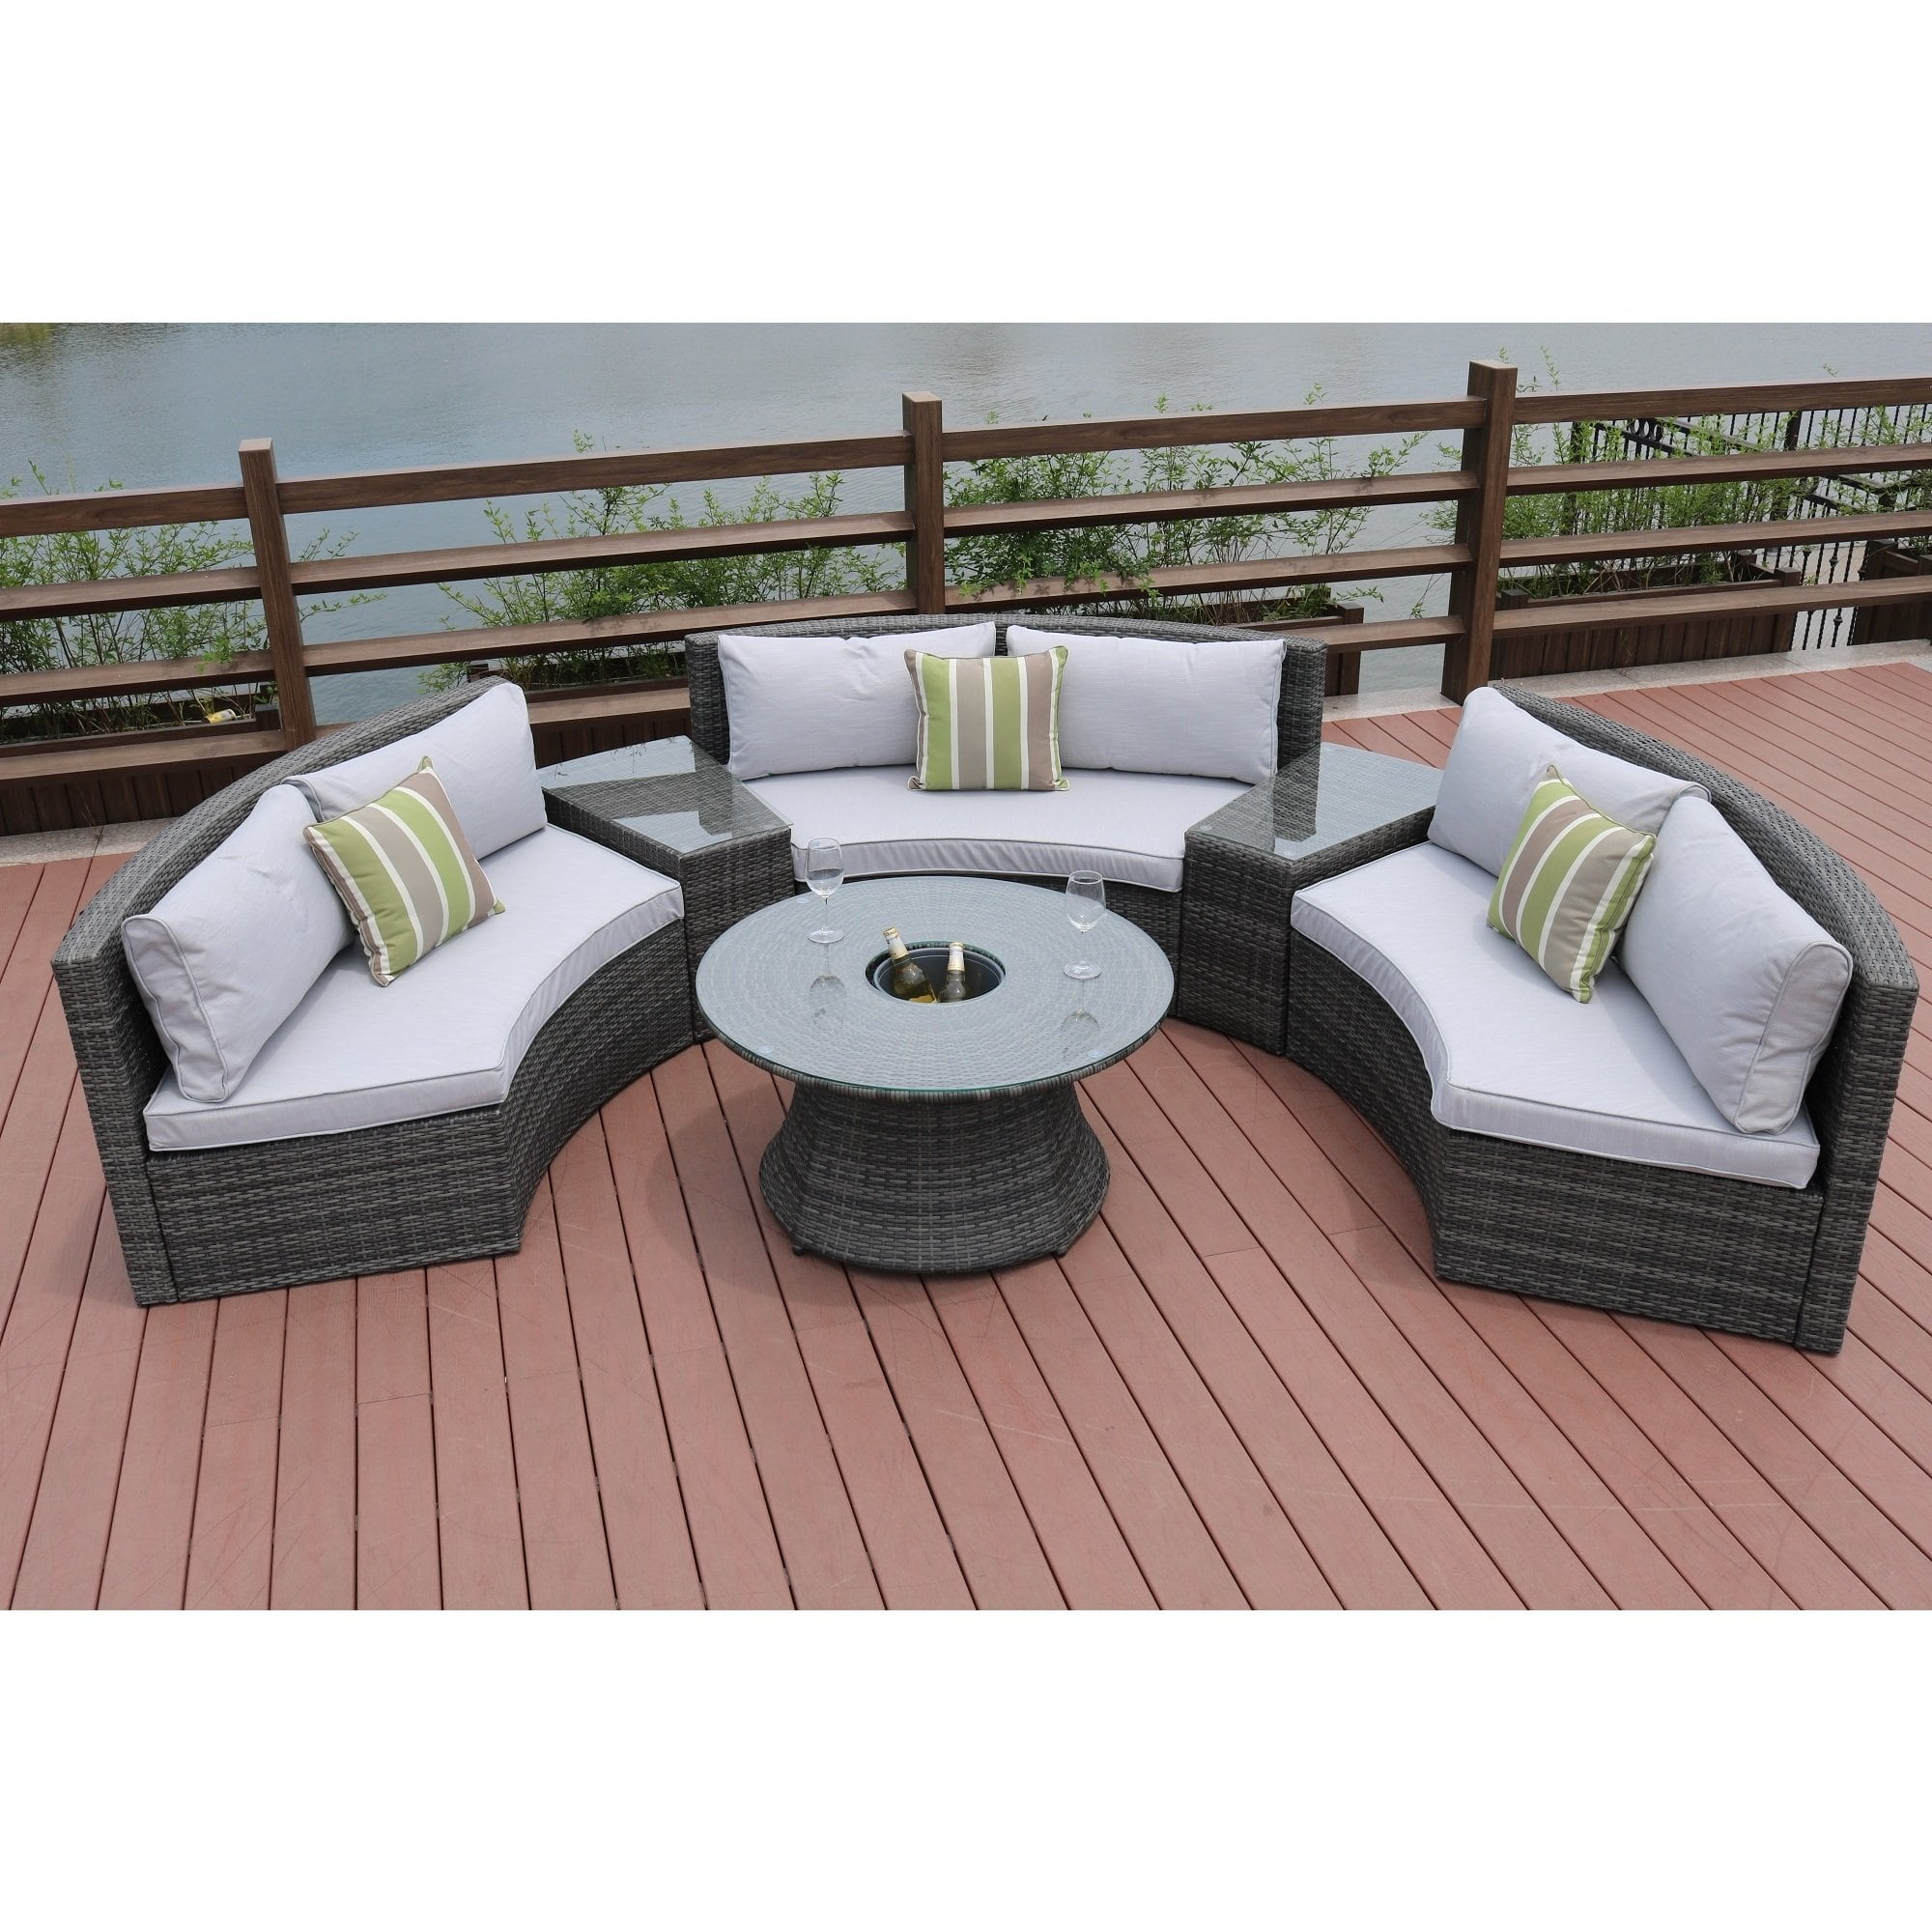 half moon piece outdoor curved sectional sofa with side table set direct wicker ave six fabric chair and accent free shipping today patio modern style furniture kitchen dining